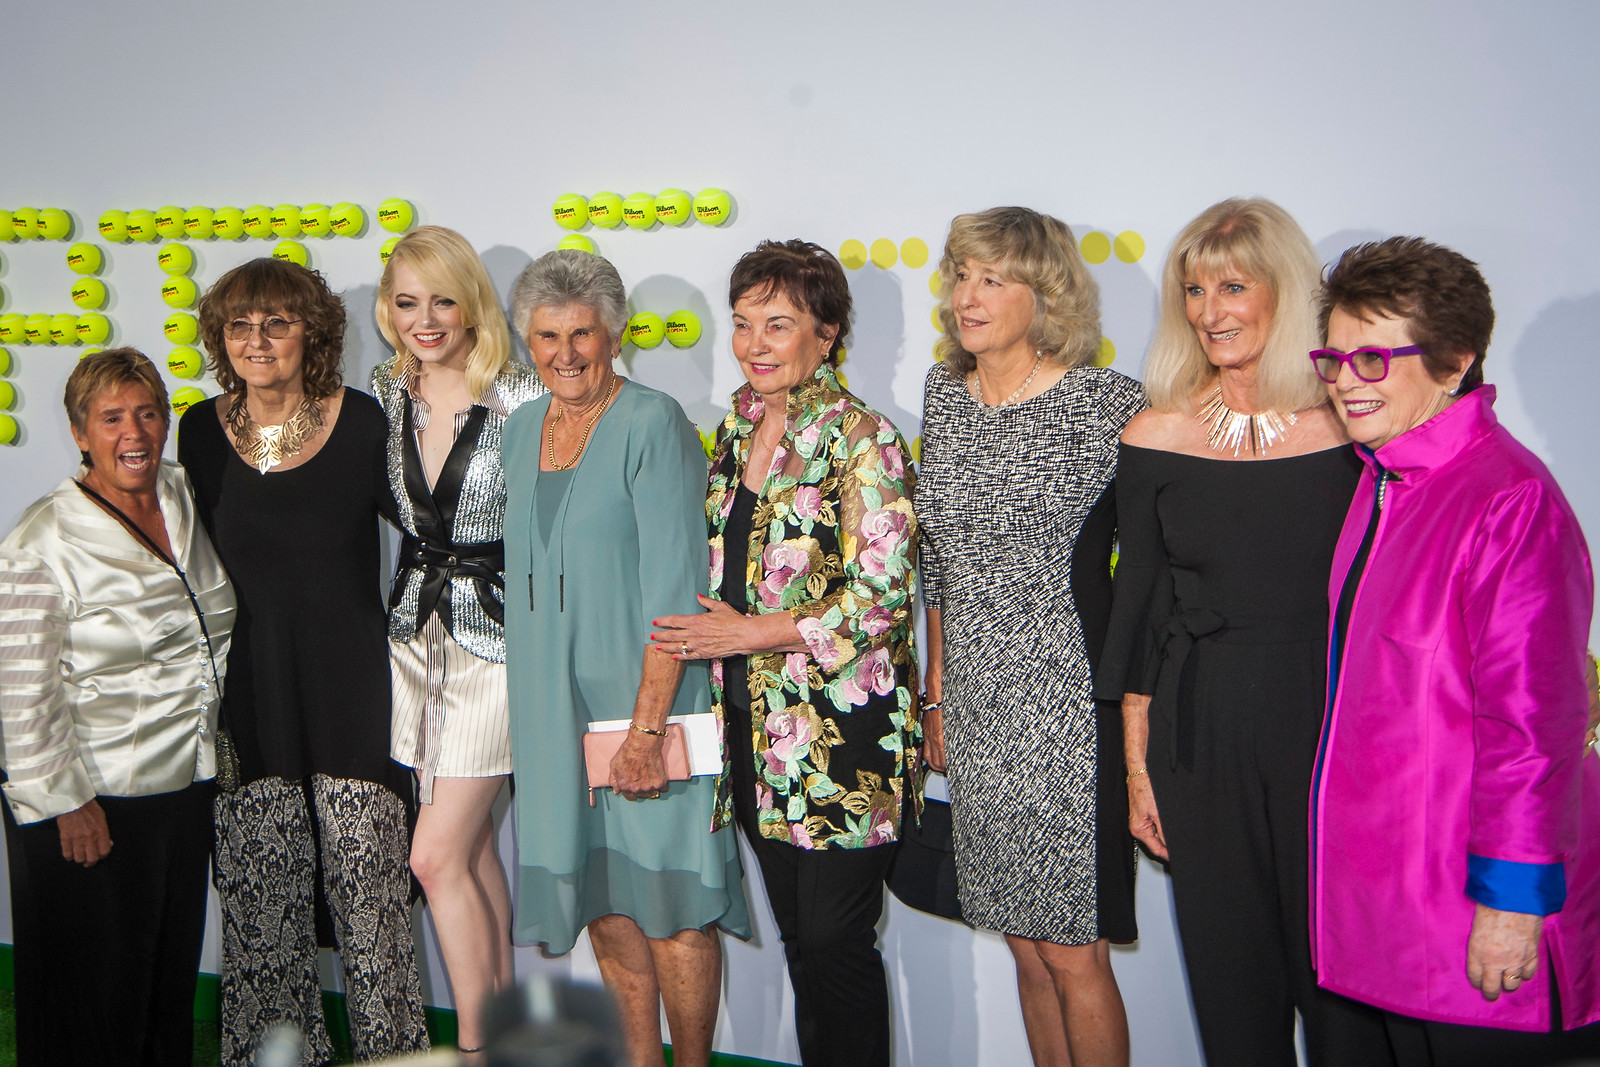 WESTWOOD, CA - SEPTEMBER 16: Rosie Casals, Julie Heldman, Emma Stone, Billie Jean King, Judy Teagart Dalton, Kerry Melville Reid, Kristy Pigeon and Valerie Ziegenfuss attend the premiere of Fox Searchlight Pictures' 'Battle Of The Sexes' at Regency Village Theatre on Saturday, September 16, 2017 in Westwood, California. (Photo by Tom Sorensen/Moovieboy Pictures)